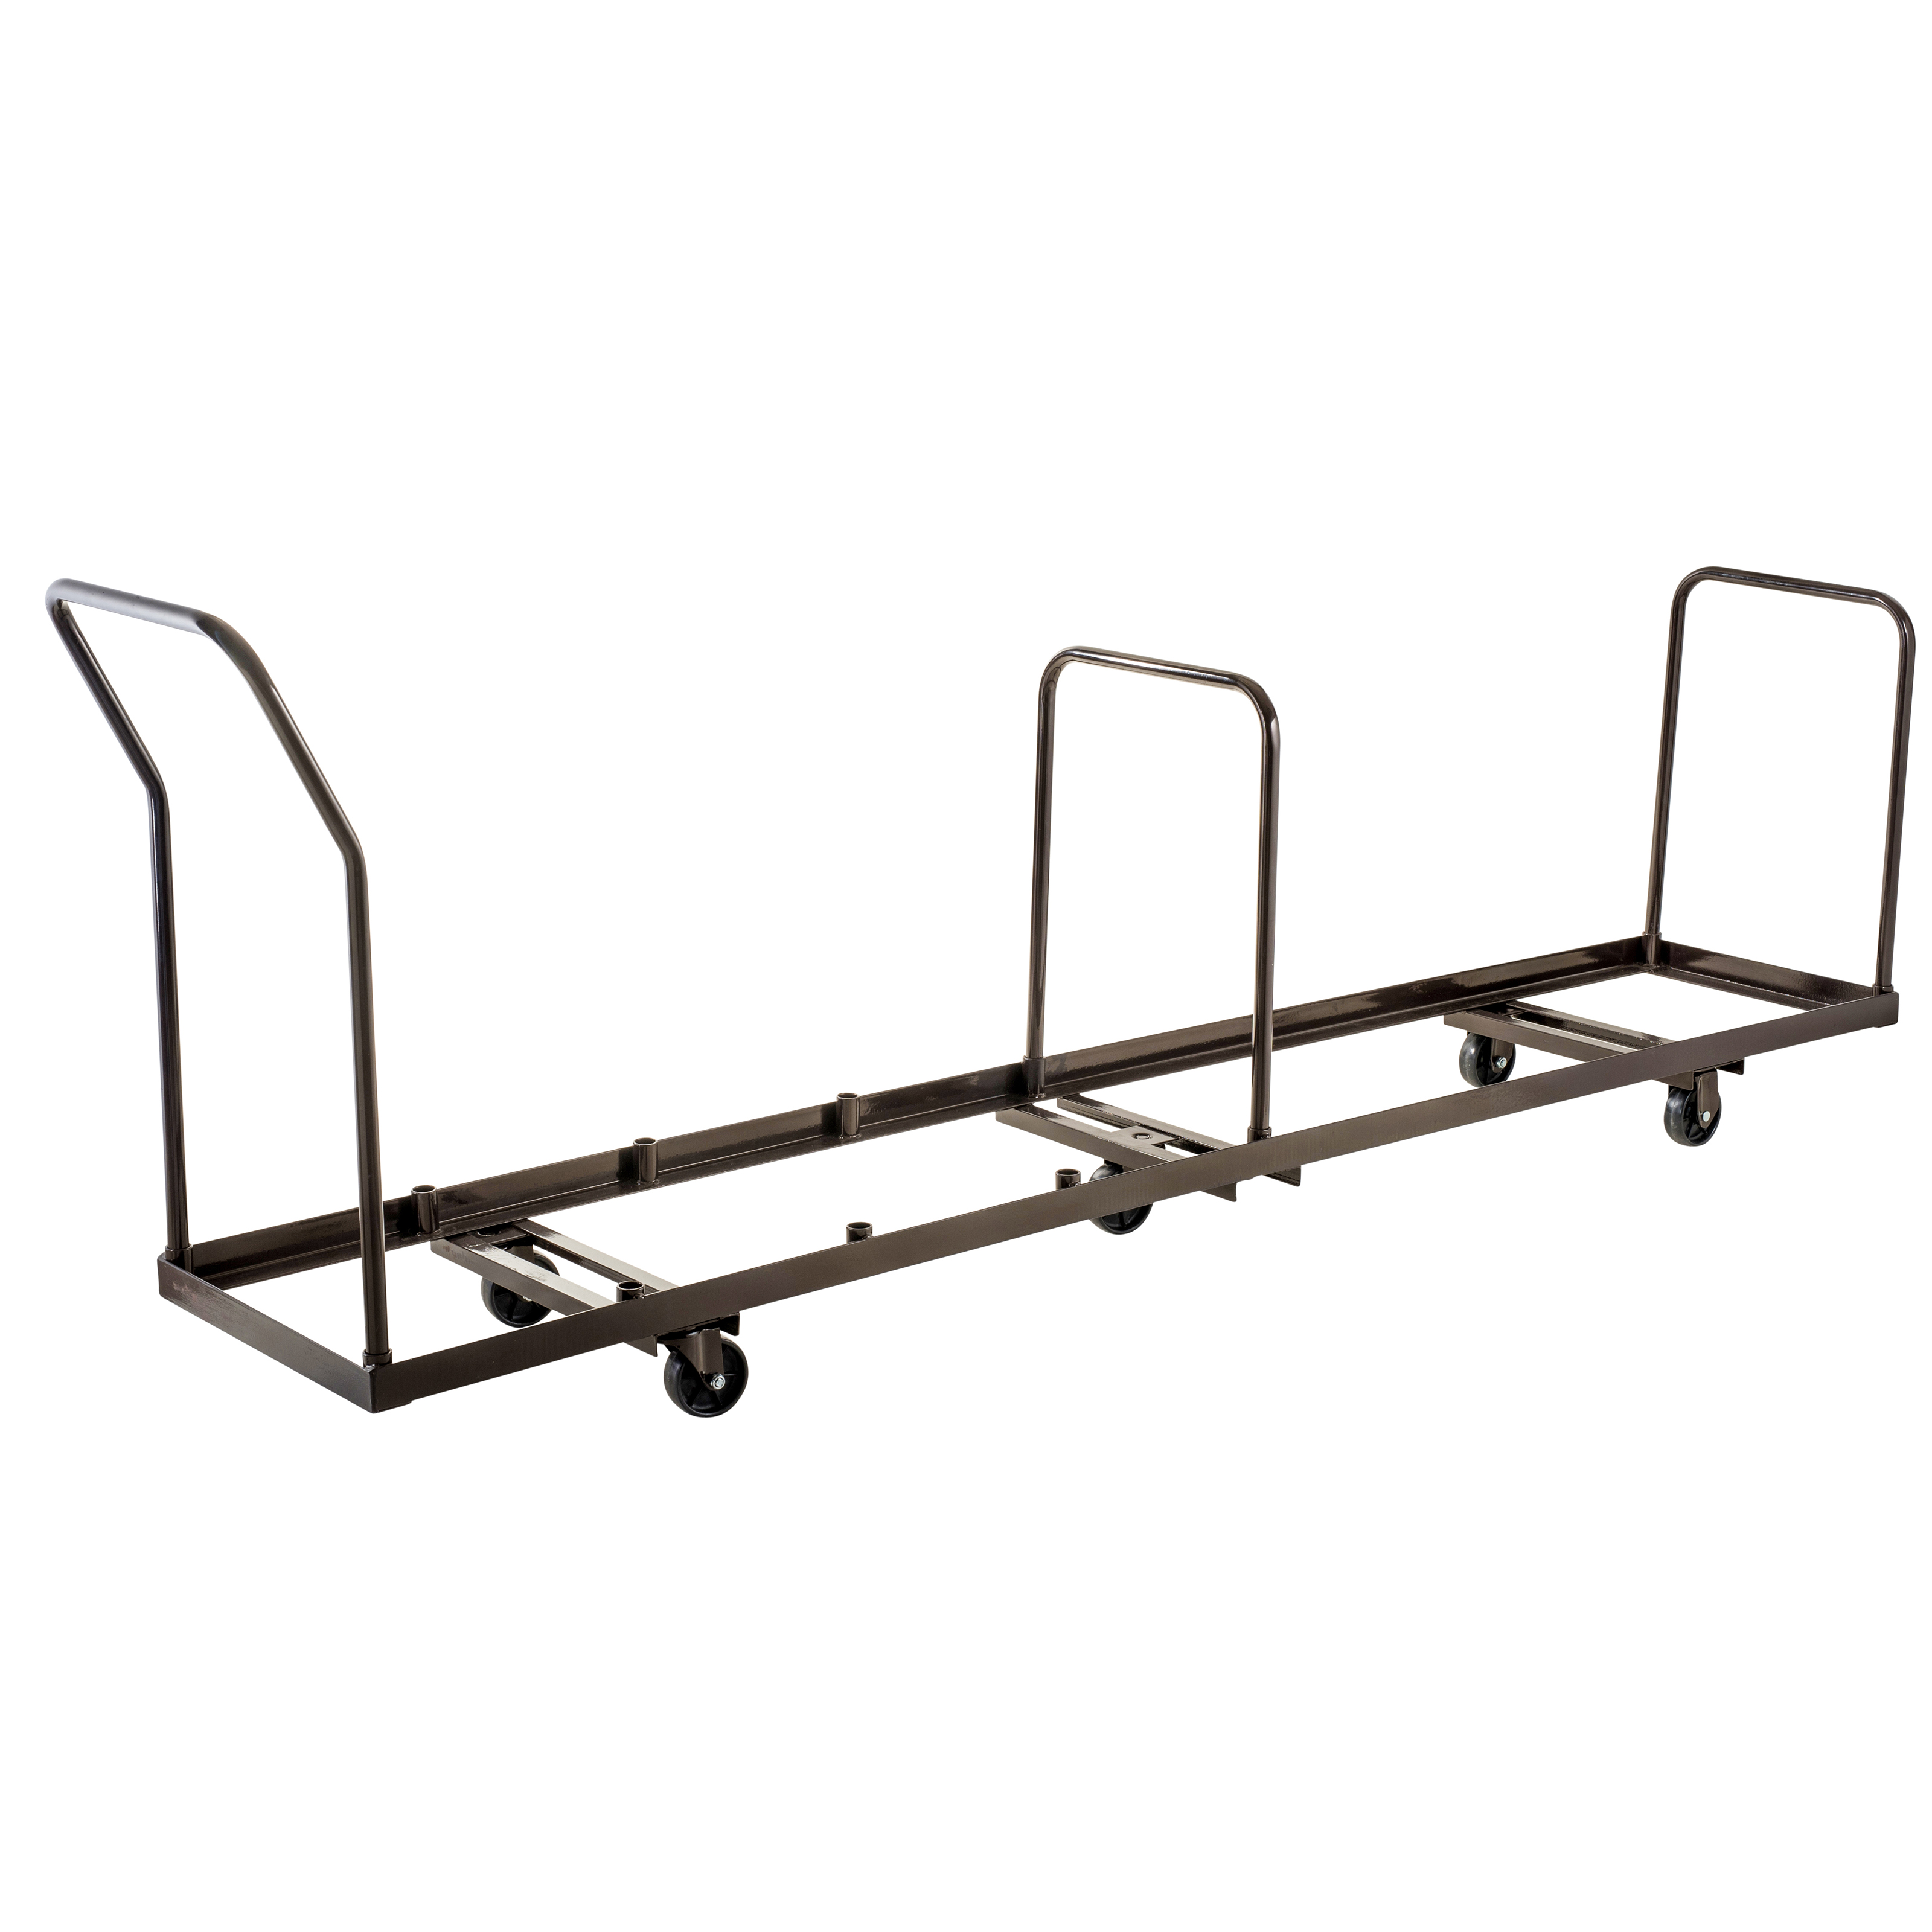 national public seating storage chair truck folding